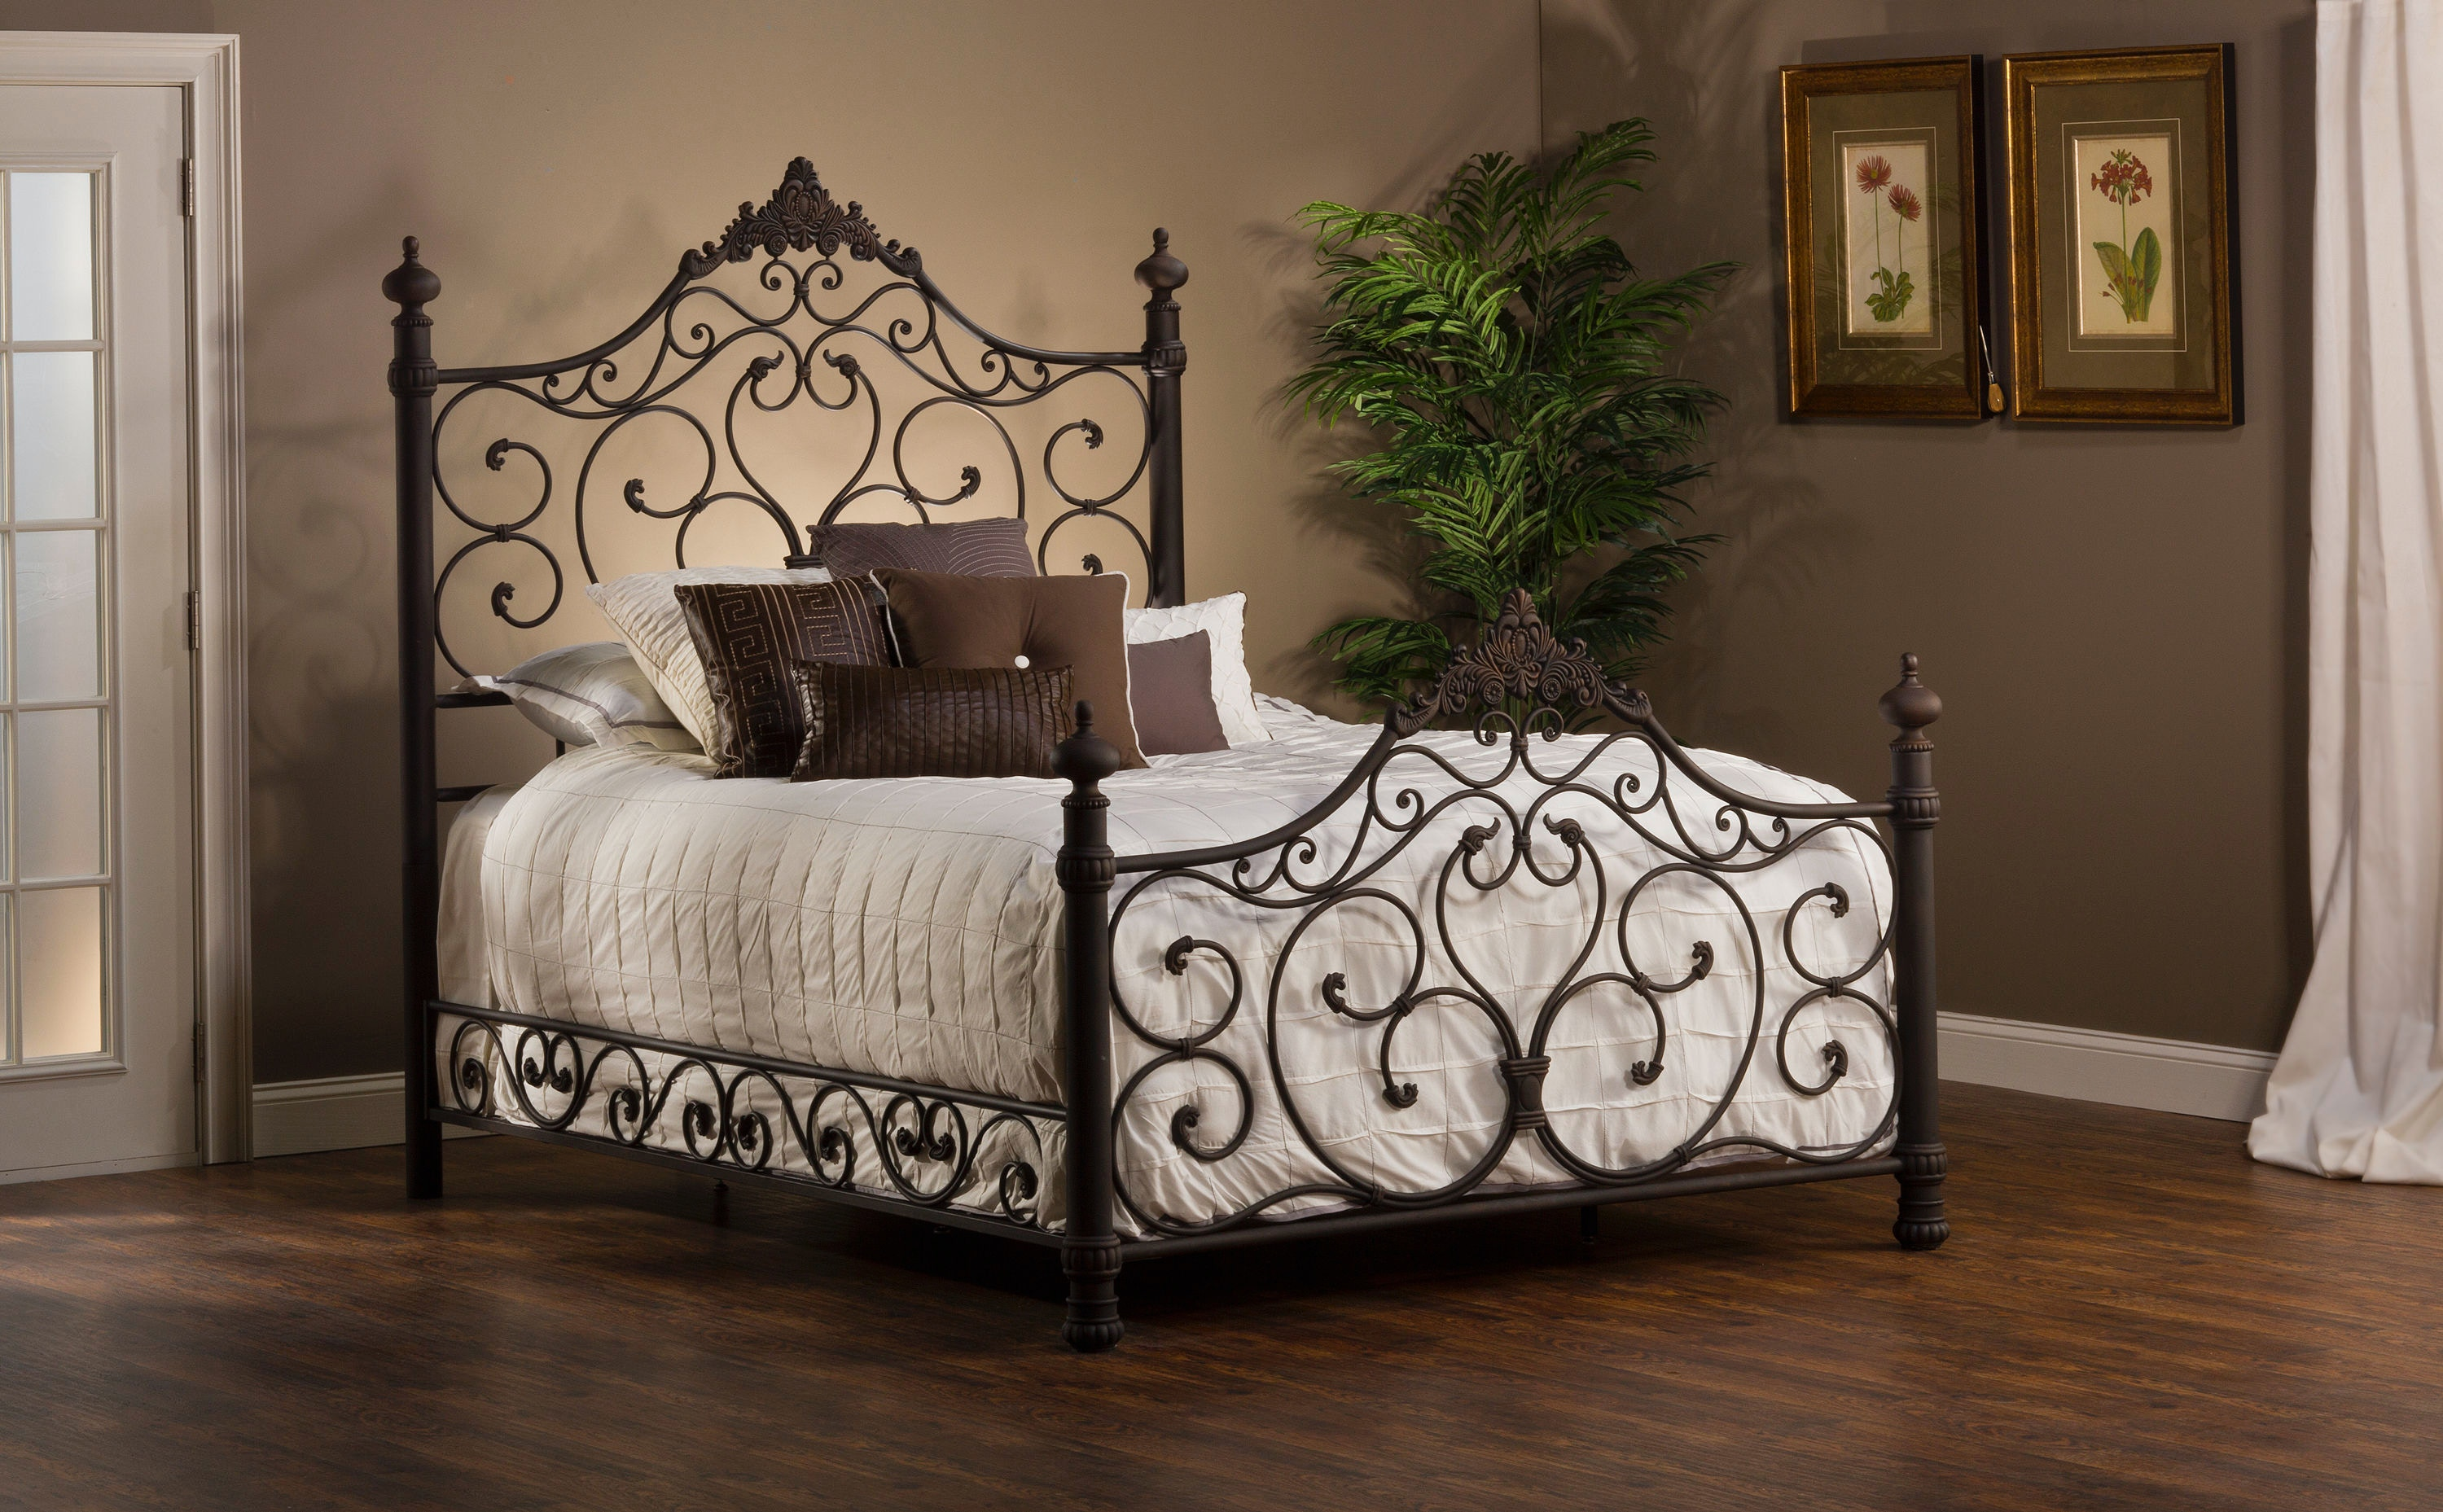 Hillsdale Furniture Bedroom Baremore Bed Set   Queen   With Rails